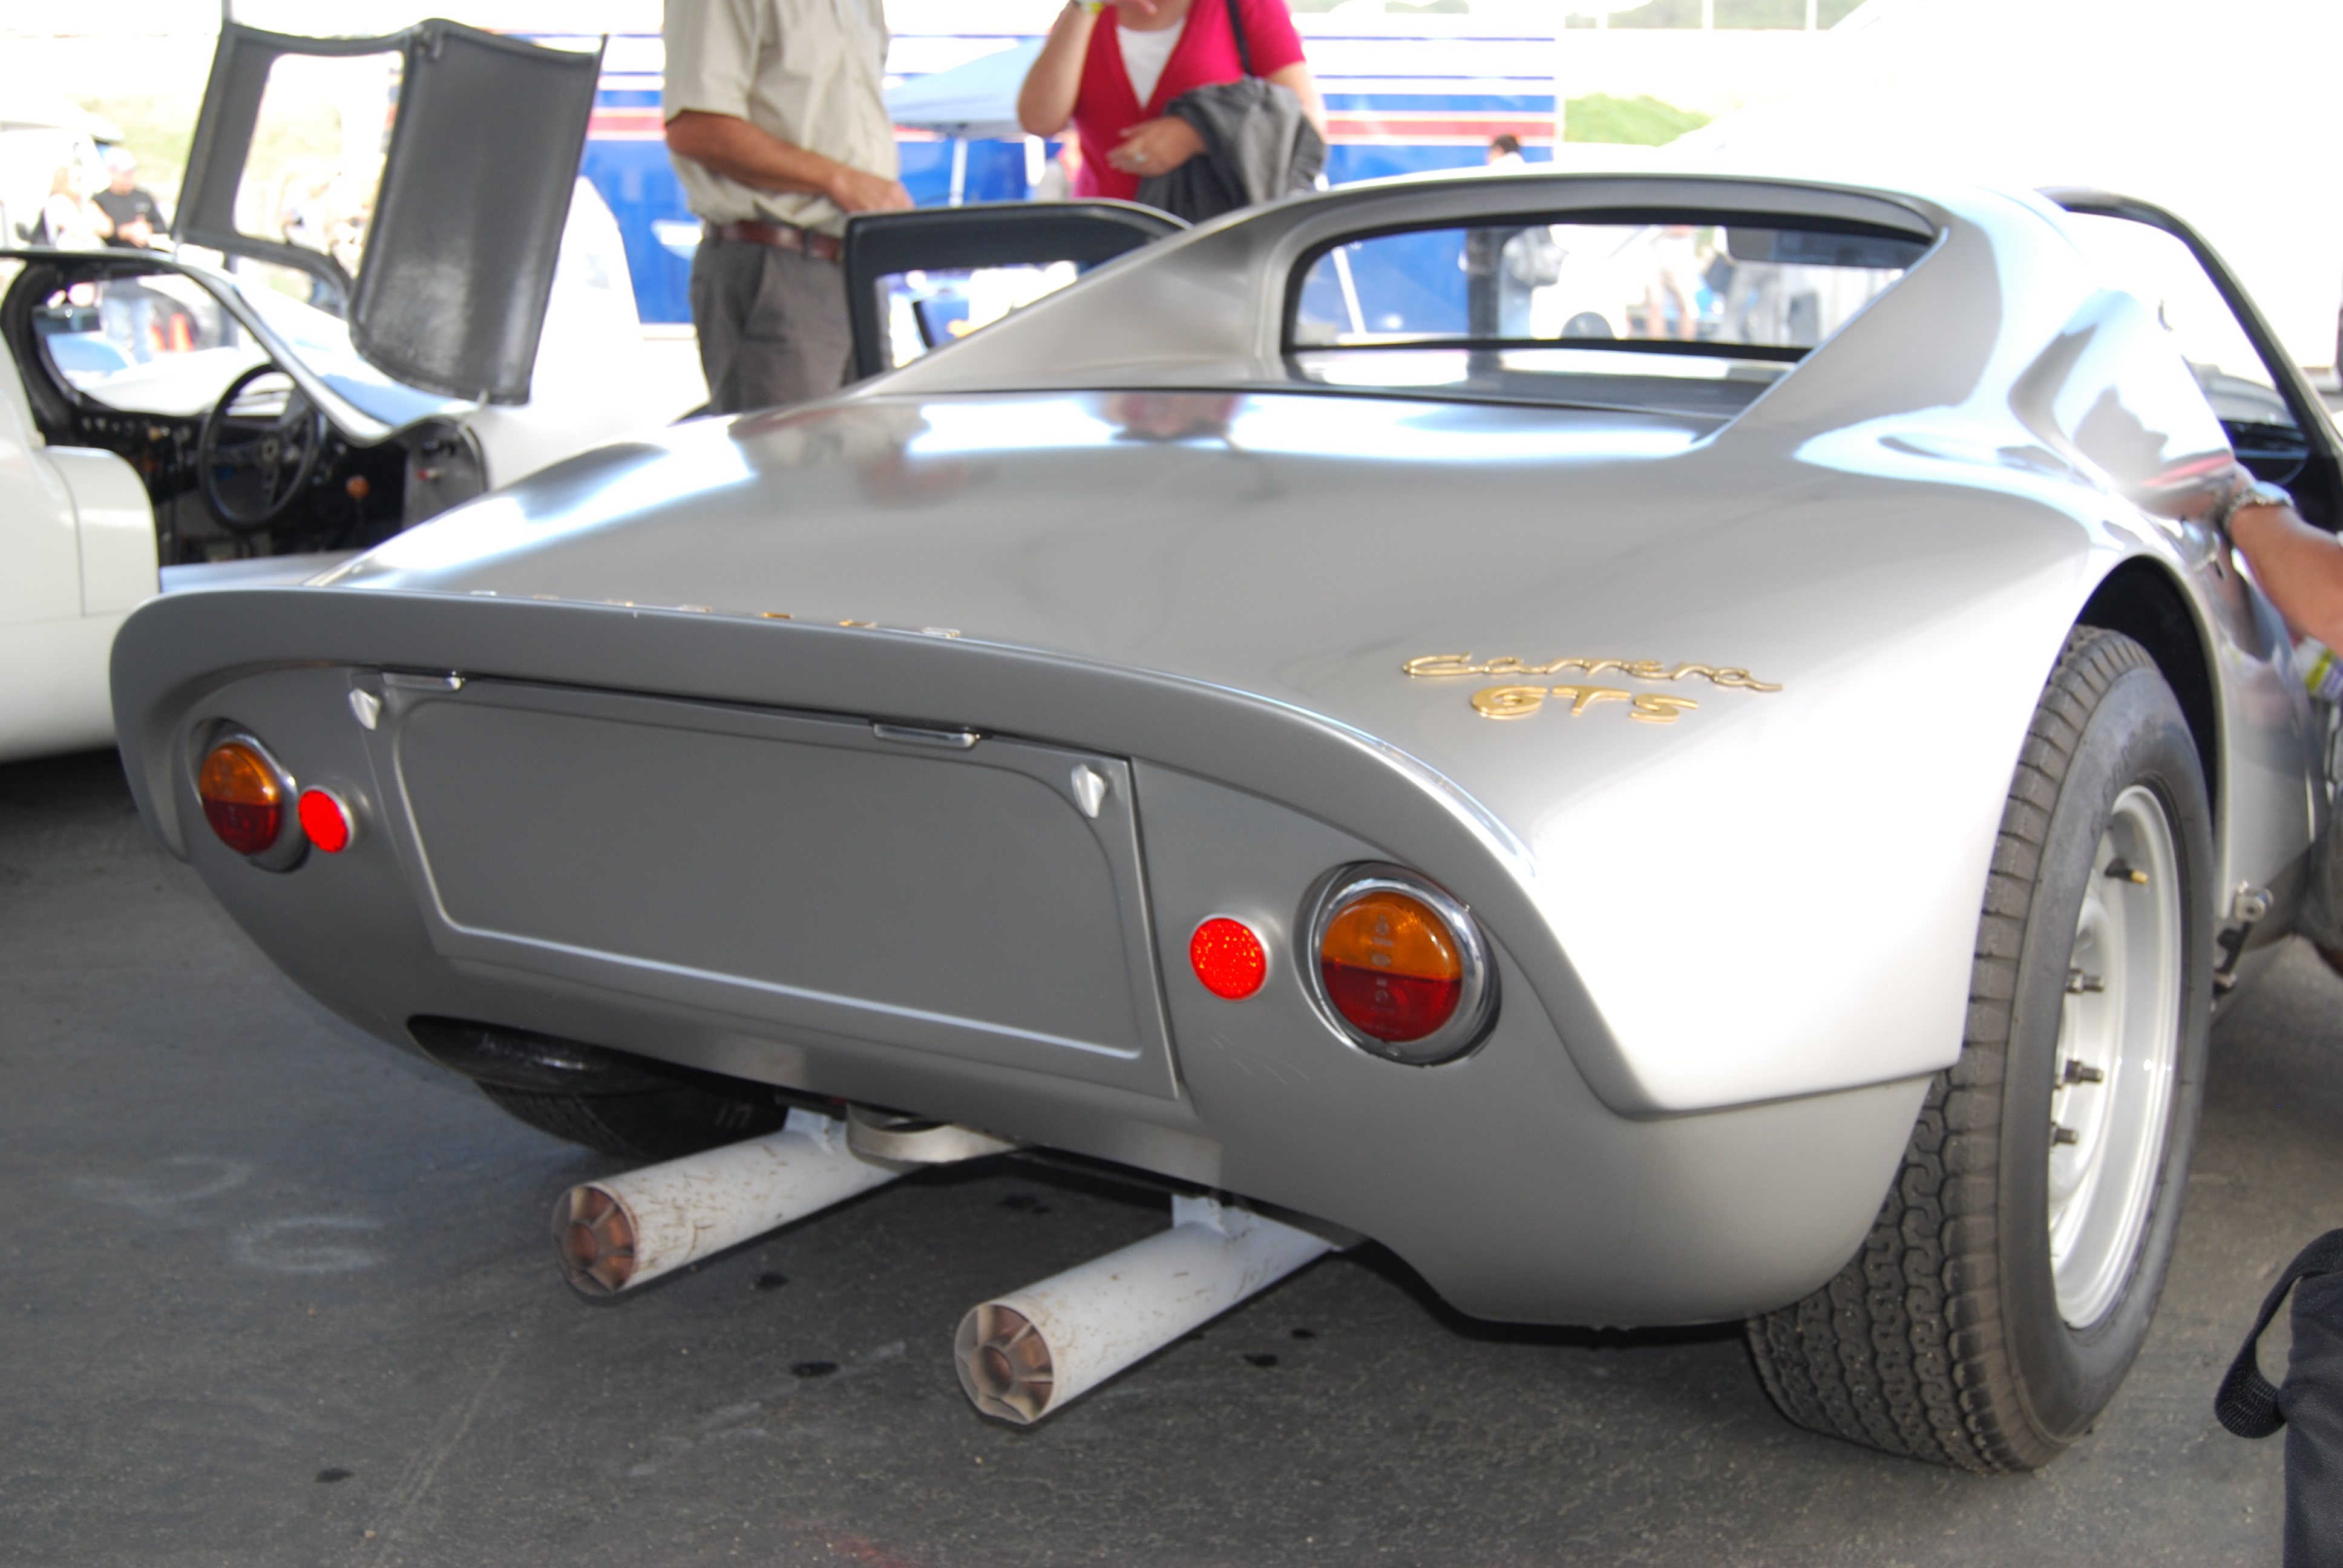 1966 Porsche_904_Carrera_GTS_^33_Right,_rear,_corner,_tail_pipes,_name,_etc..jpg